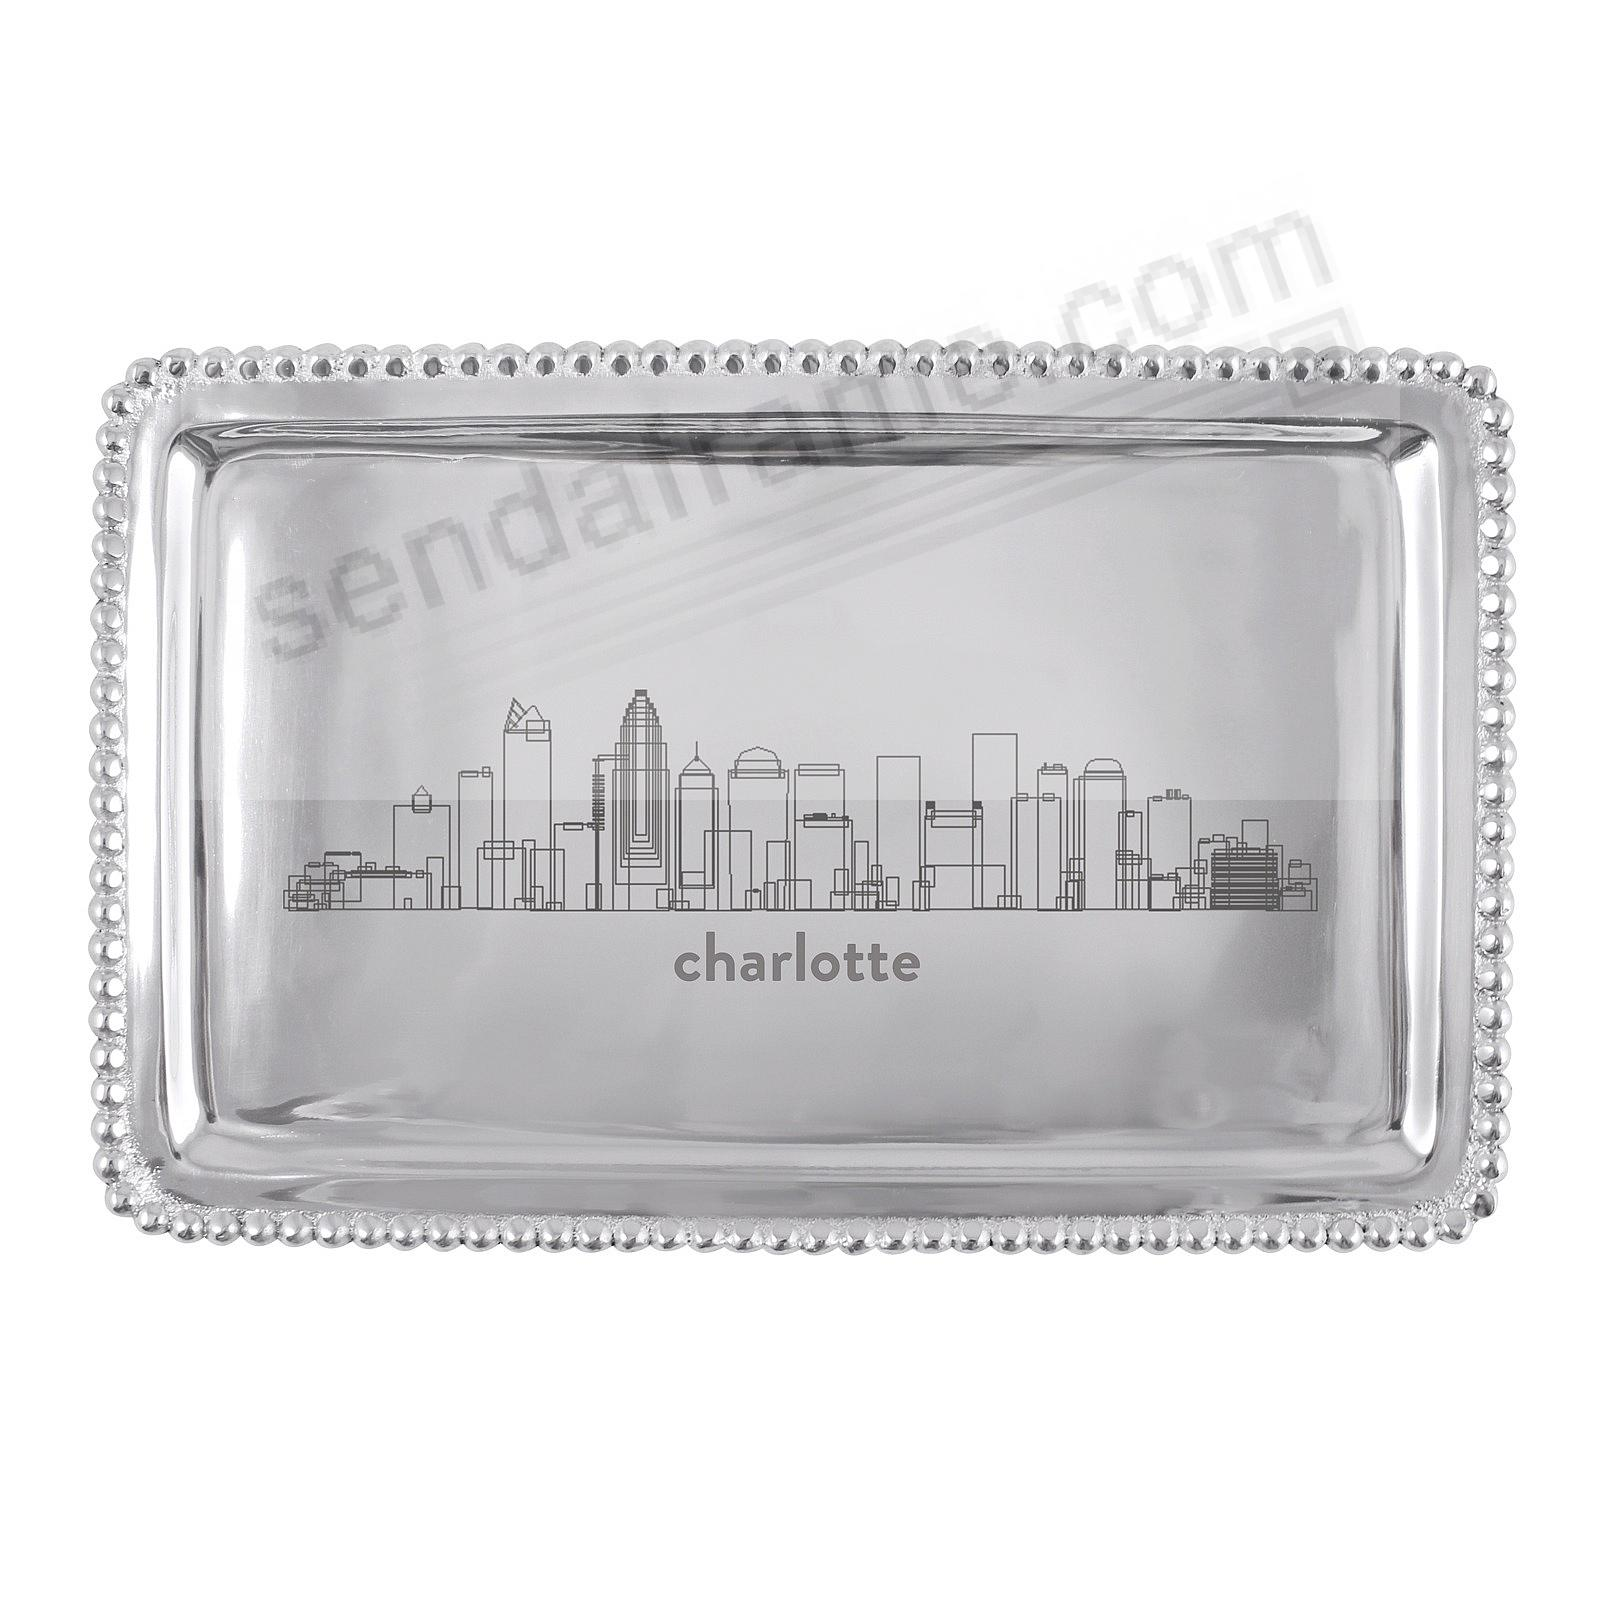 The CHARLOTTE-NC CITYSCAPE BEADED BUFFET TRAY crafted by Mariposa®